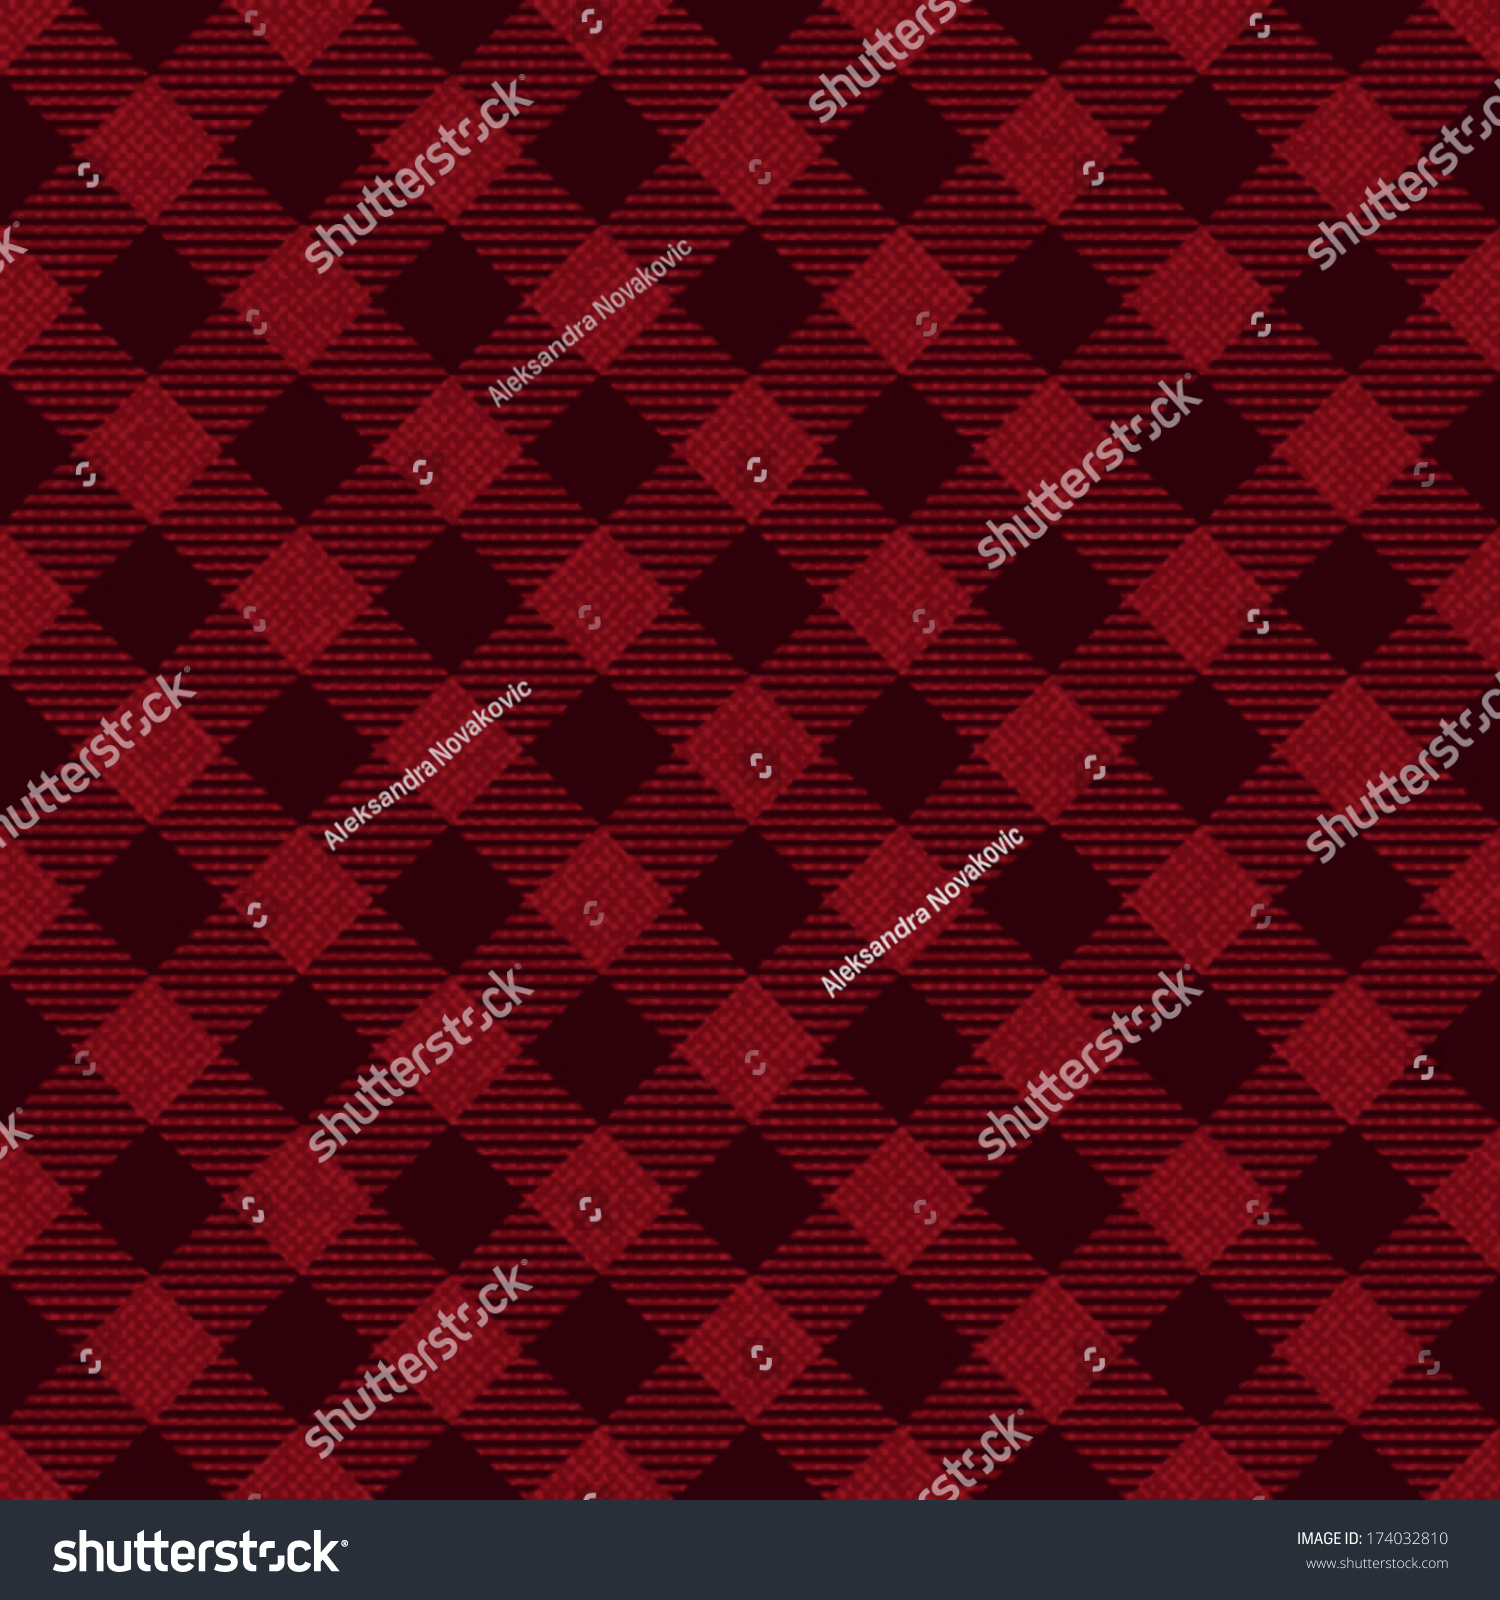 Red Black Checkered Fabric Pattern Background Stock Vector Royalty